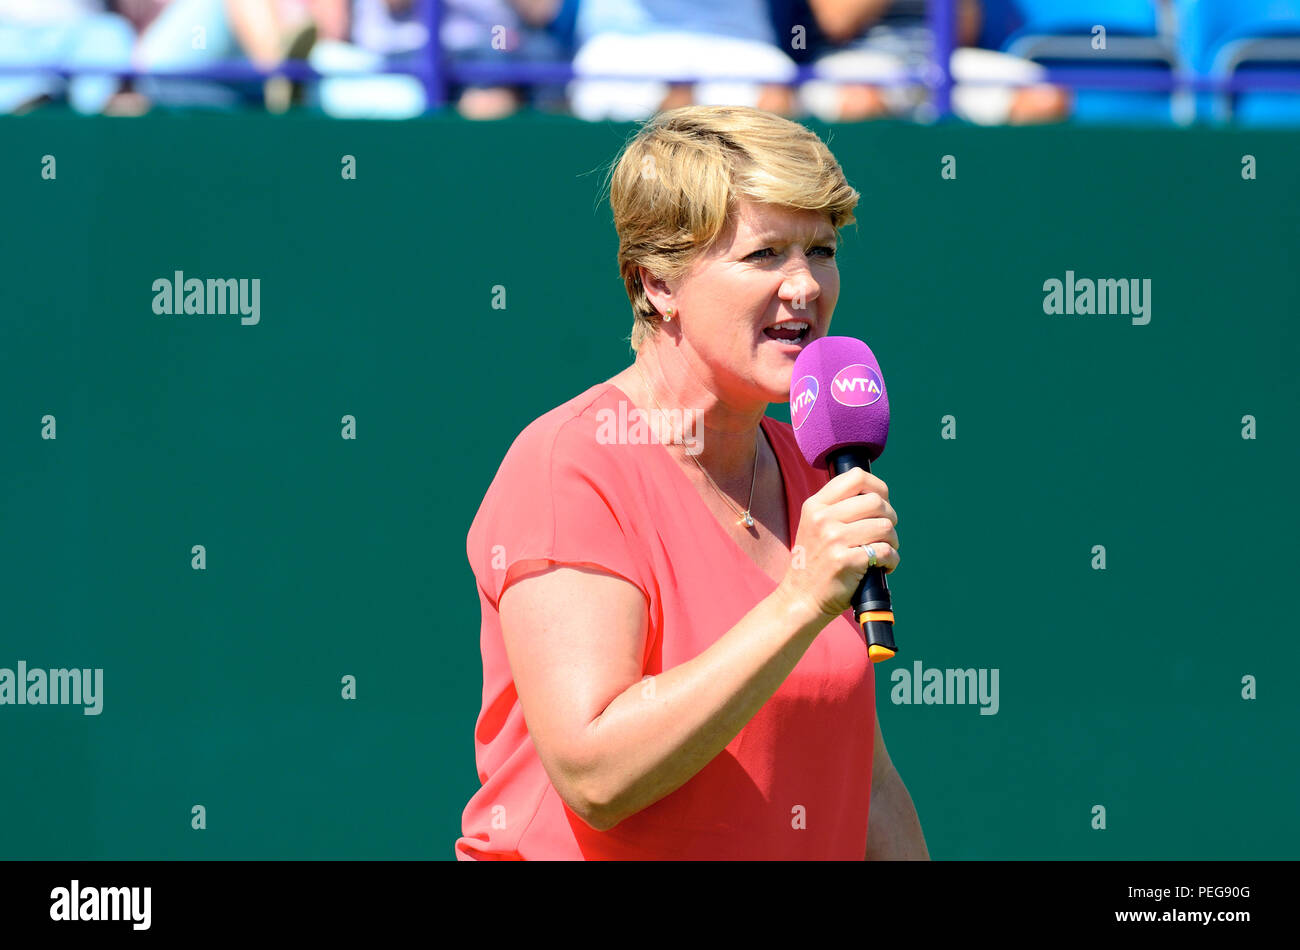 Clare Balding introducing the players at the end of the Ladies' Final of the Nature Valley International at Eastbourne before interviewing them for... - Stock Image